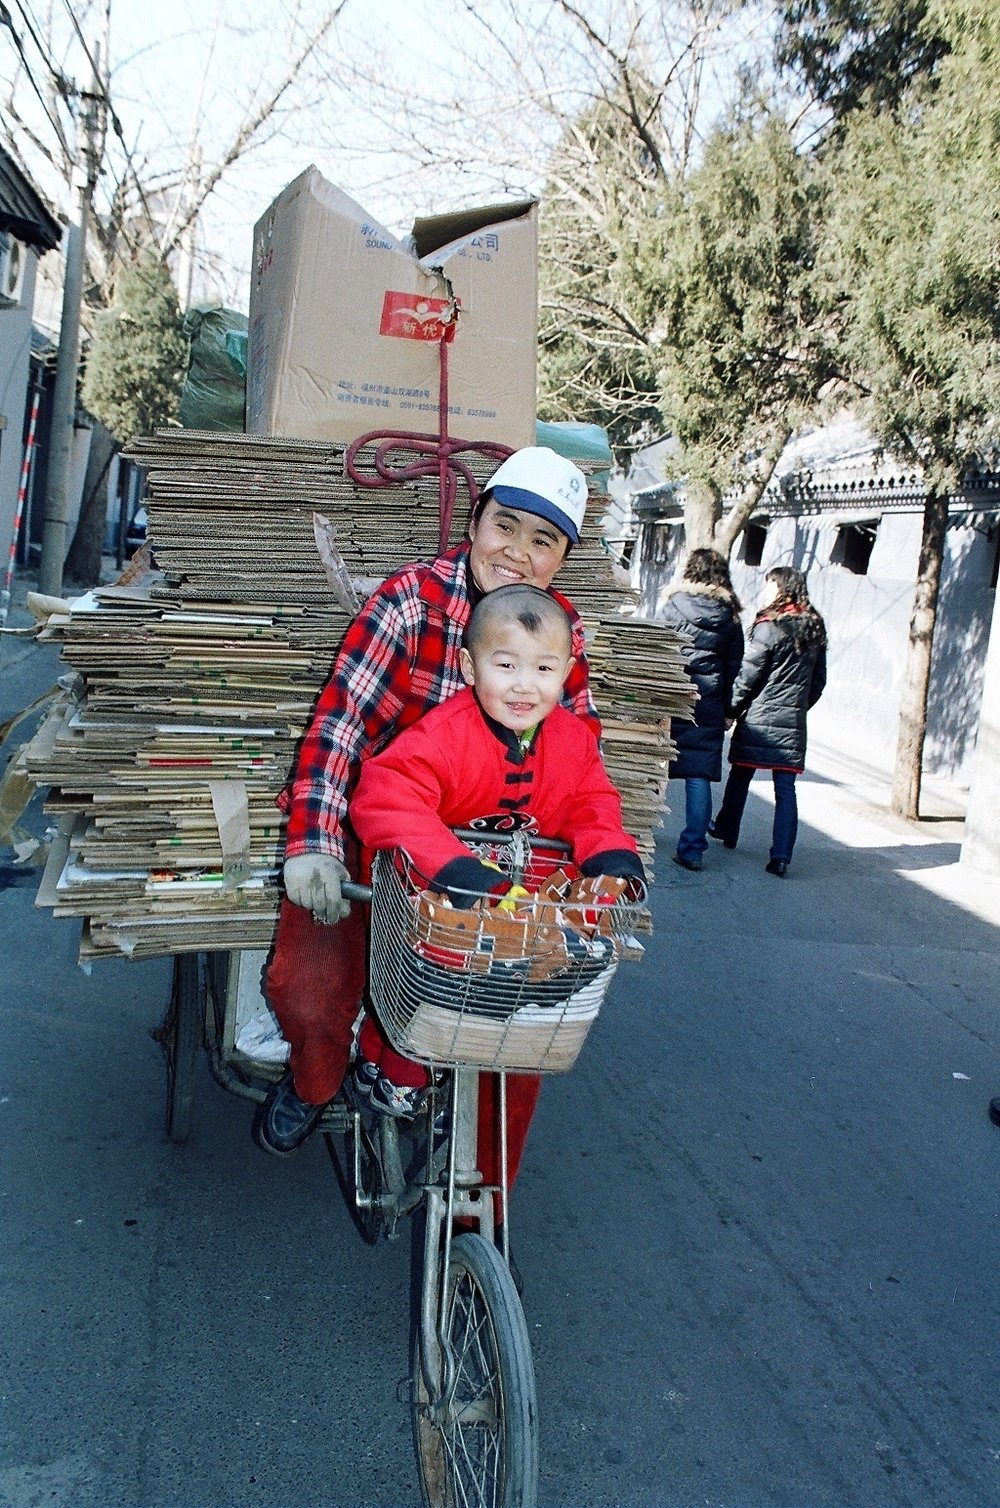 Mom and little boy with cardboard on bike.JPG